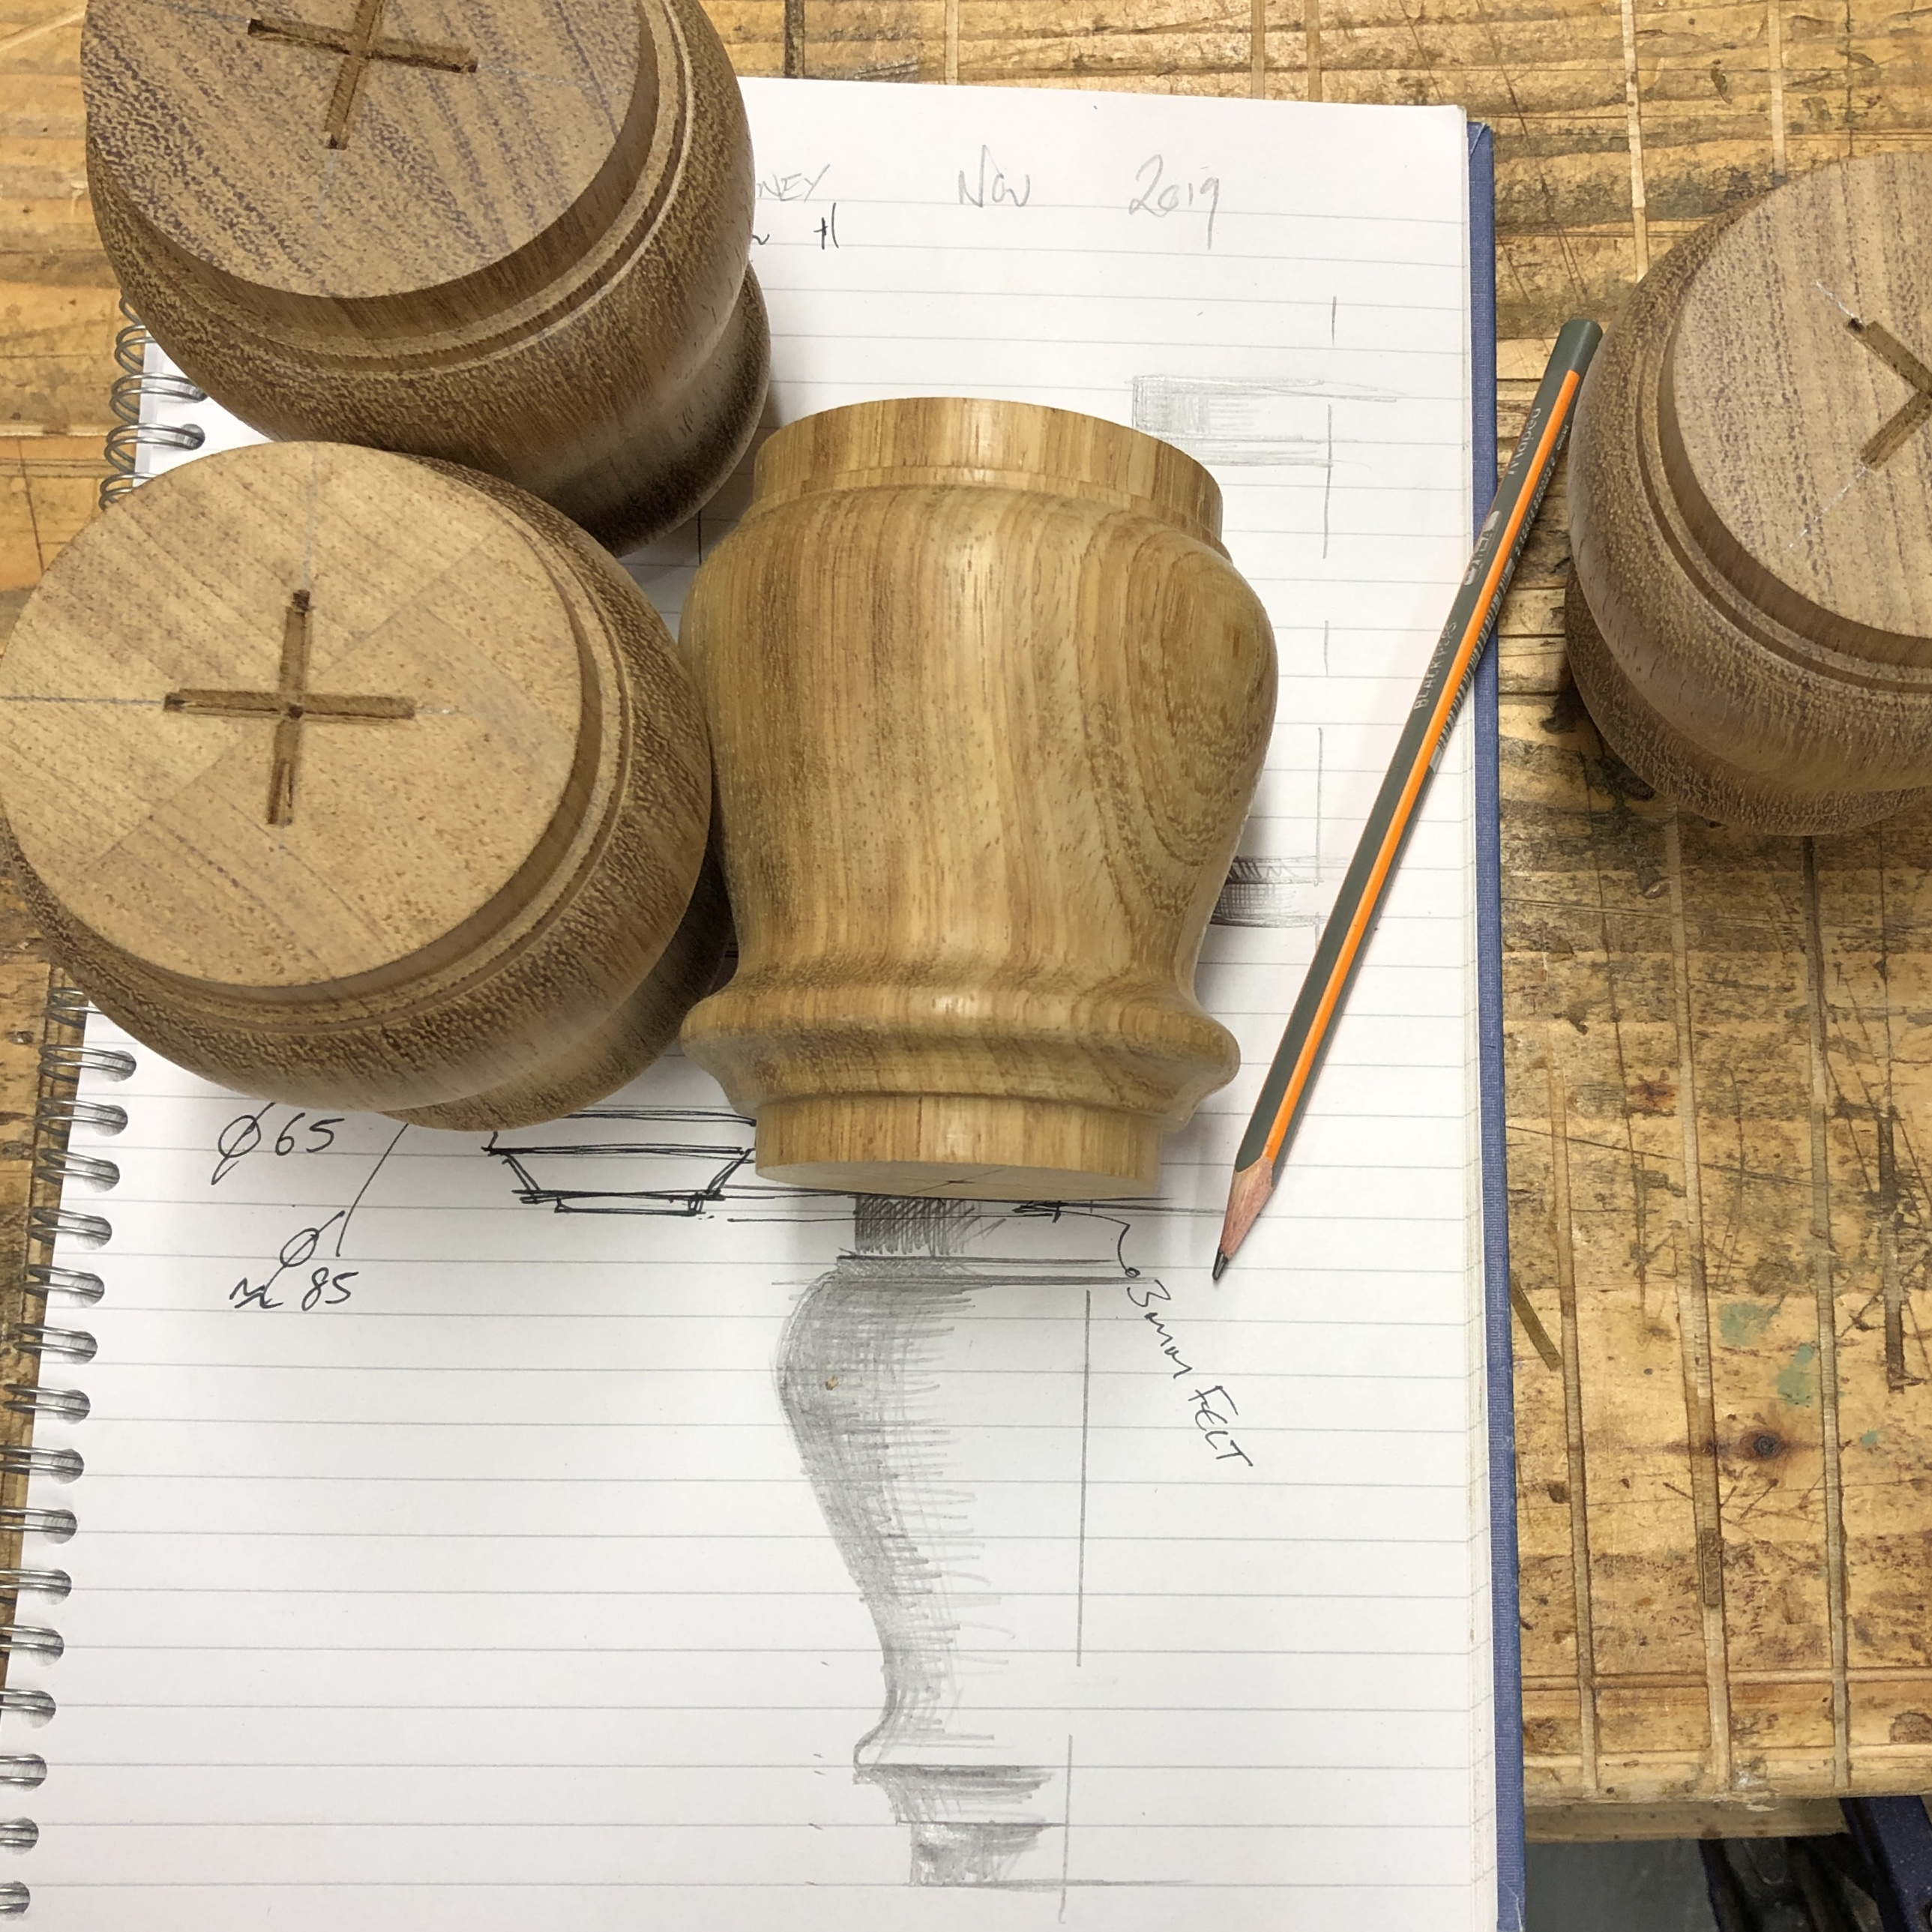 Some wood turnings